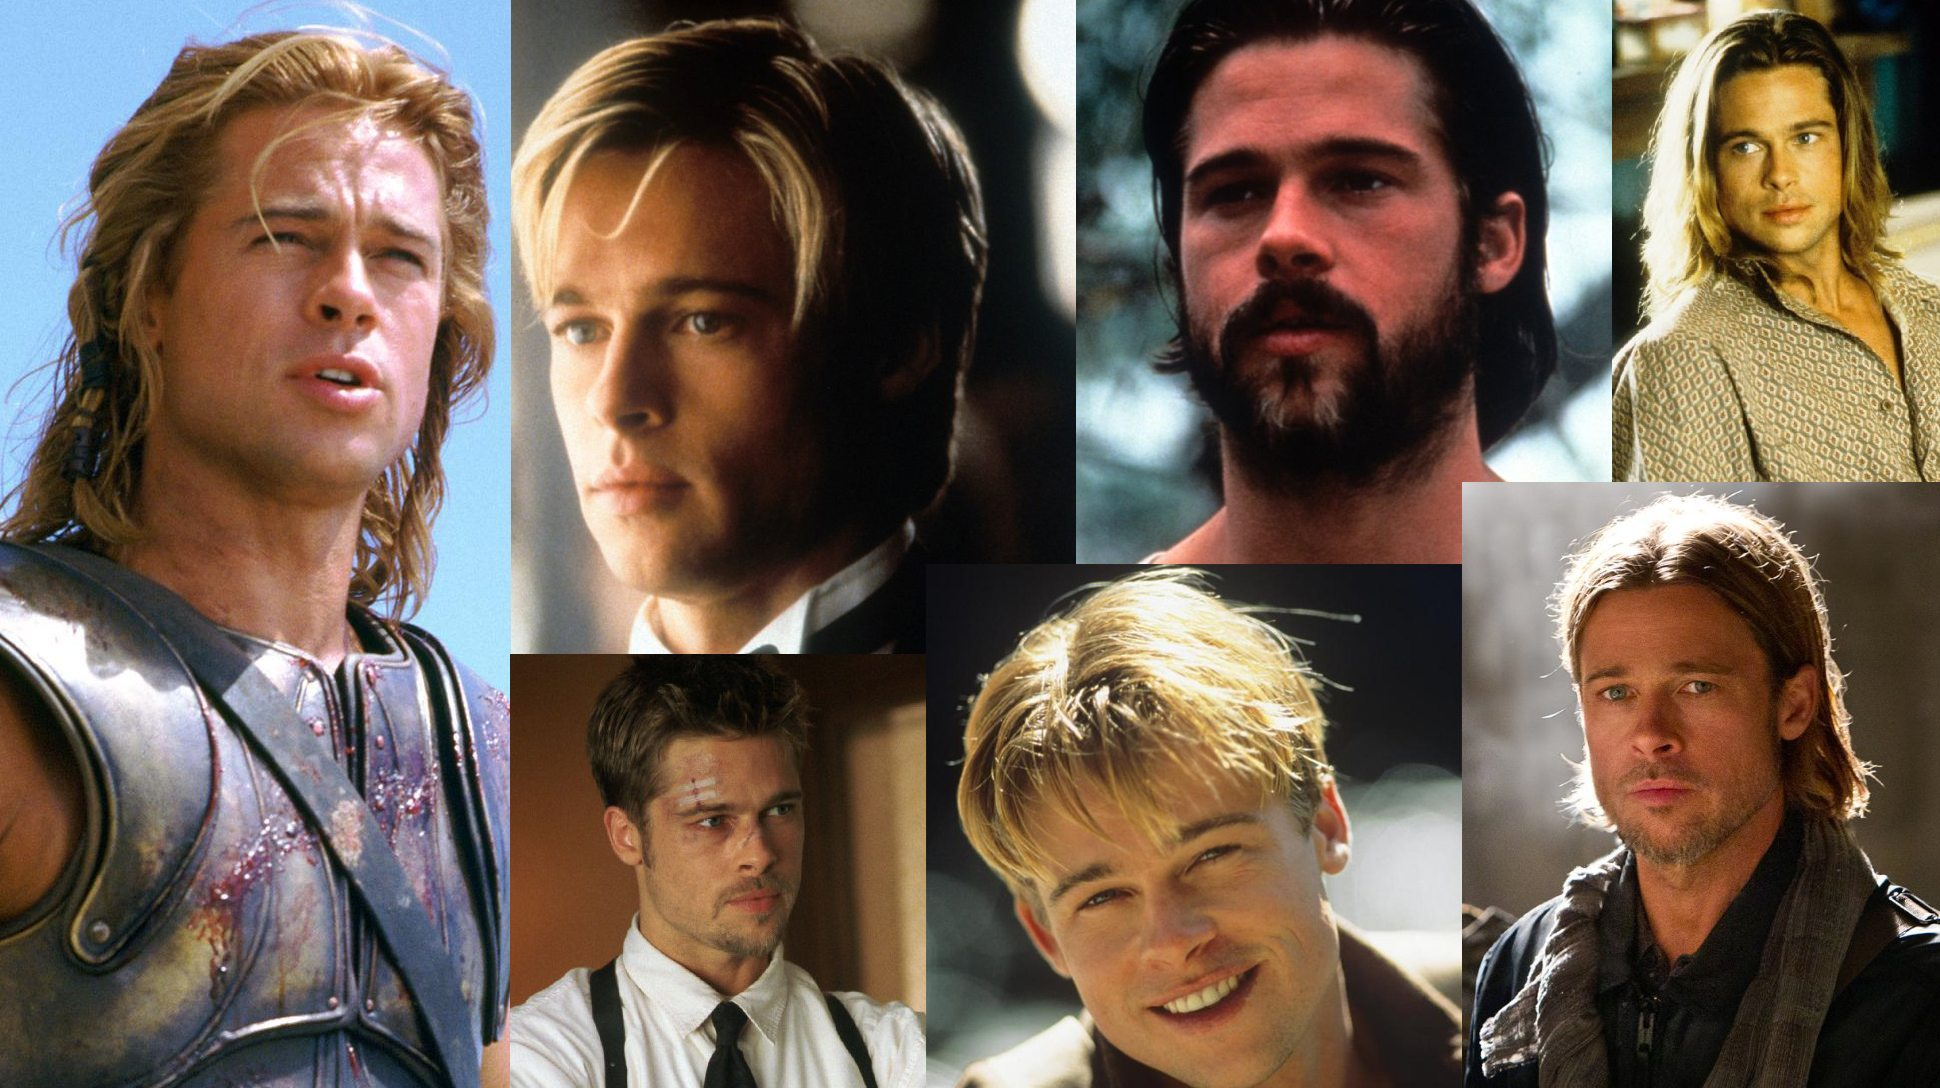 Brad Pitt's height collage